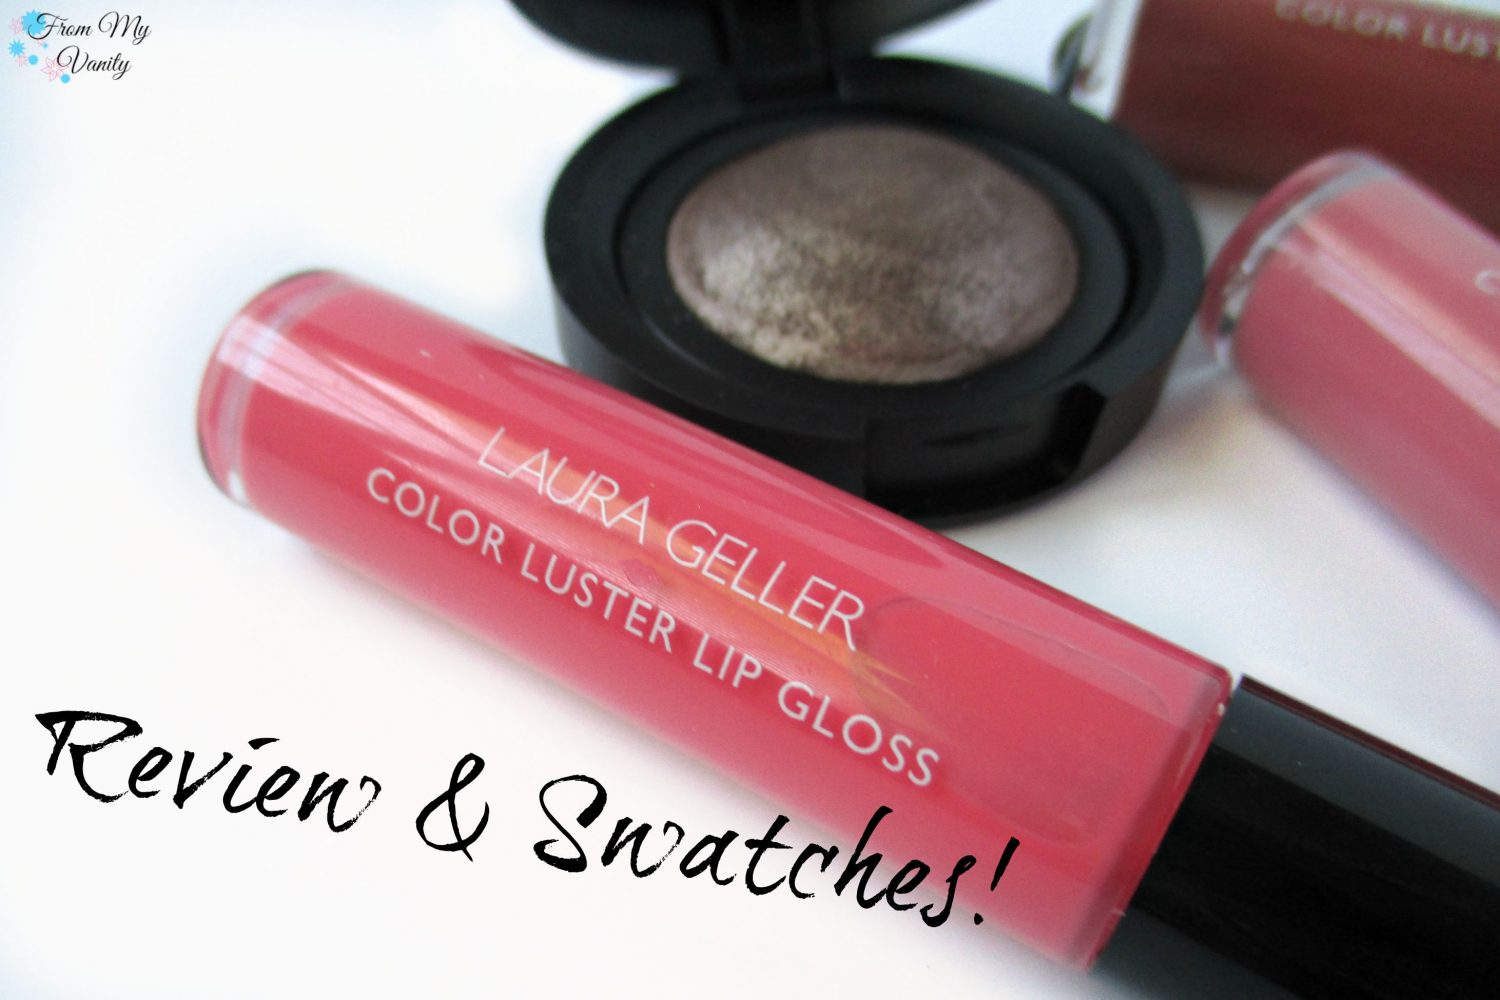 Laura Geller Color Luster Lip Glosses // From My Vanity